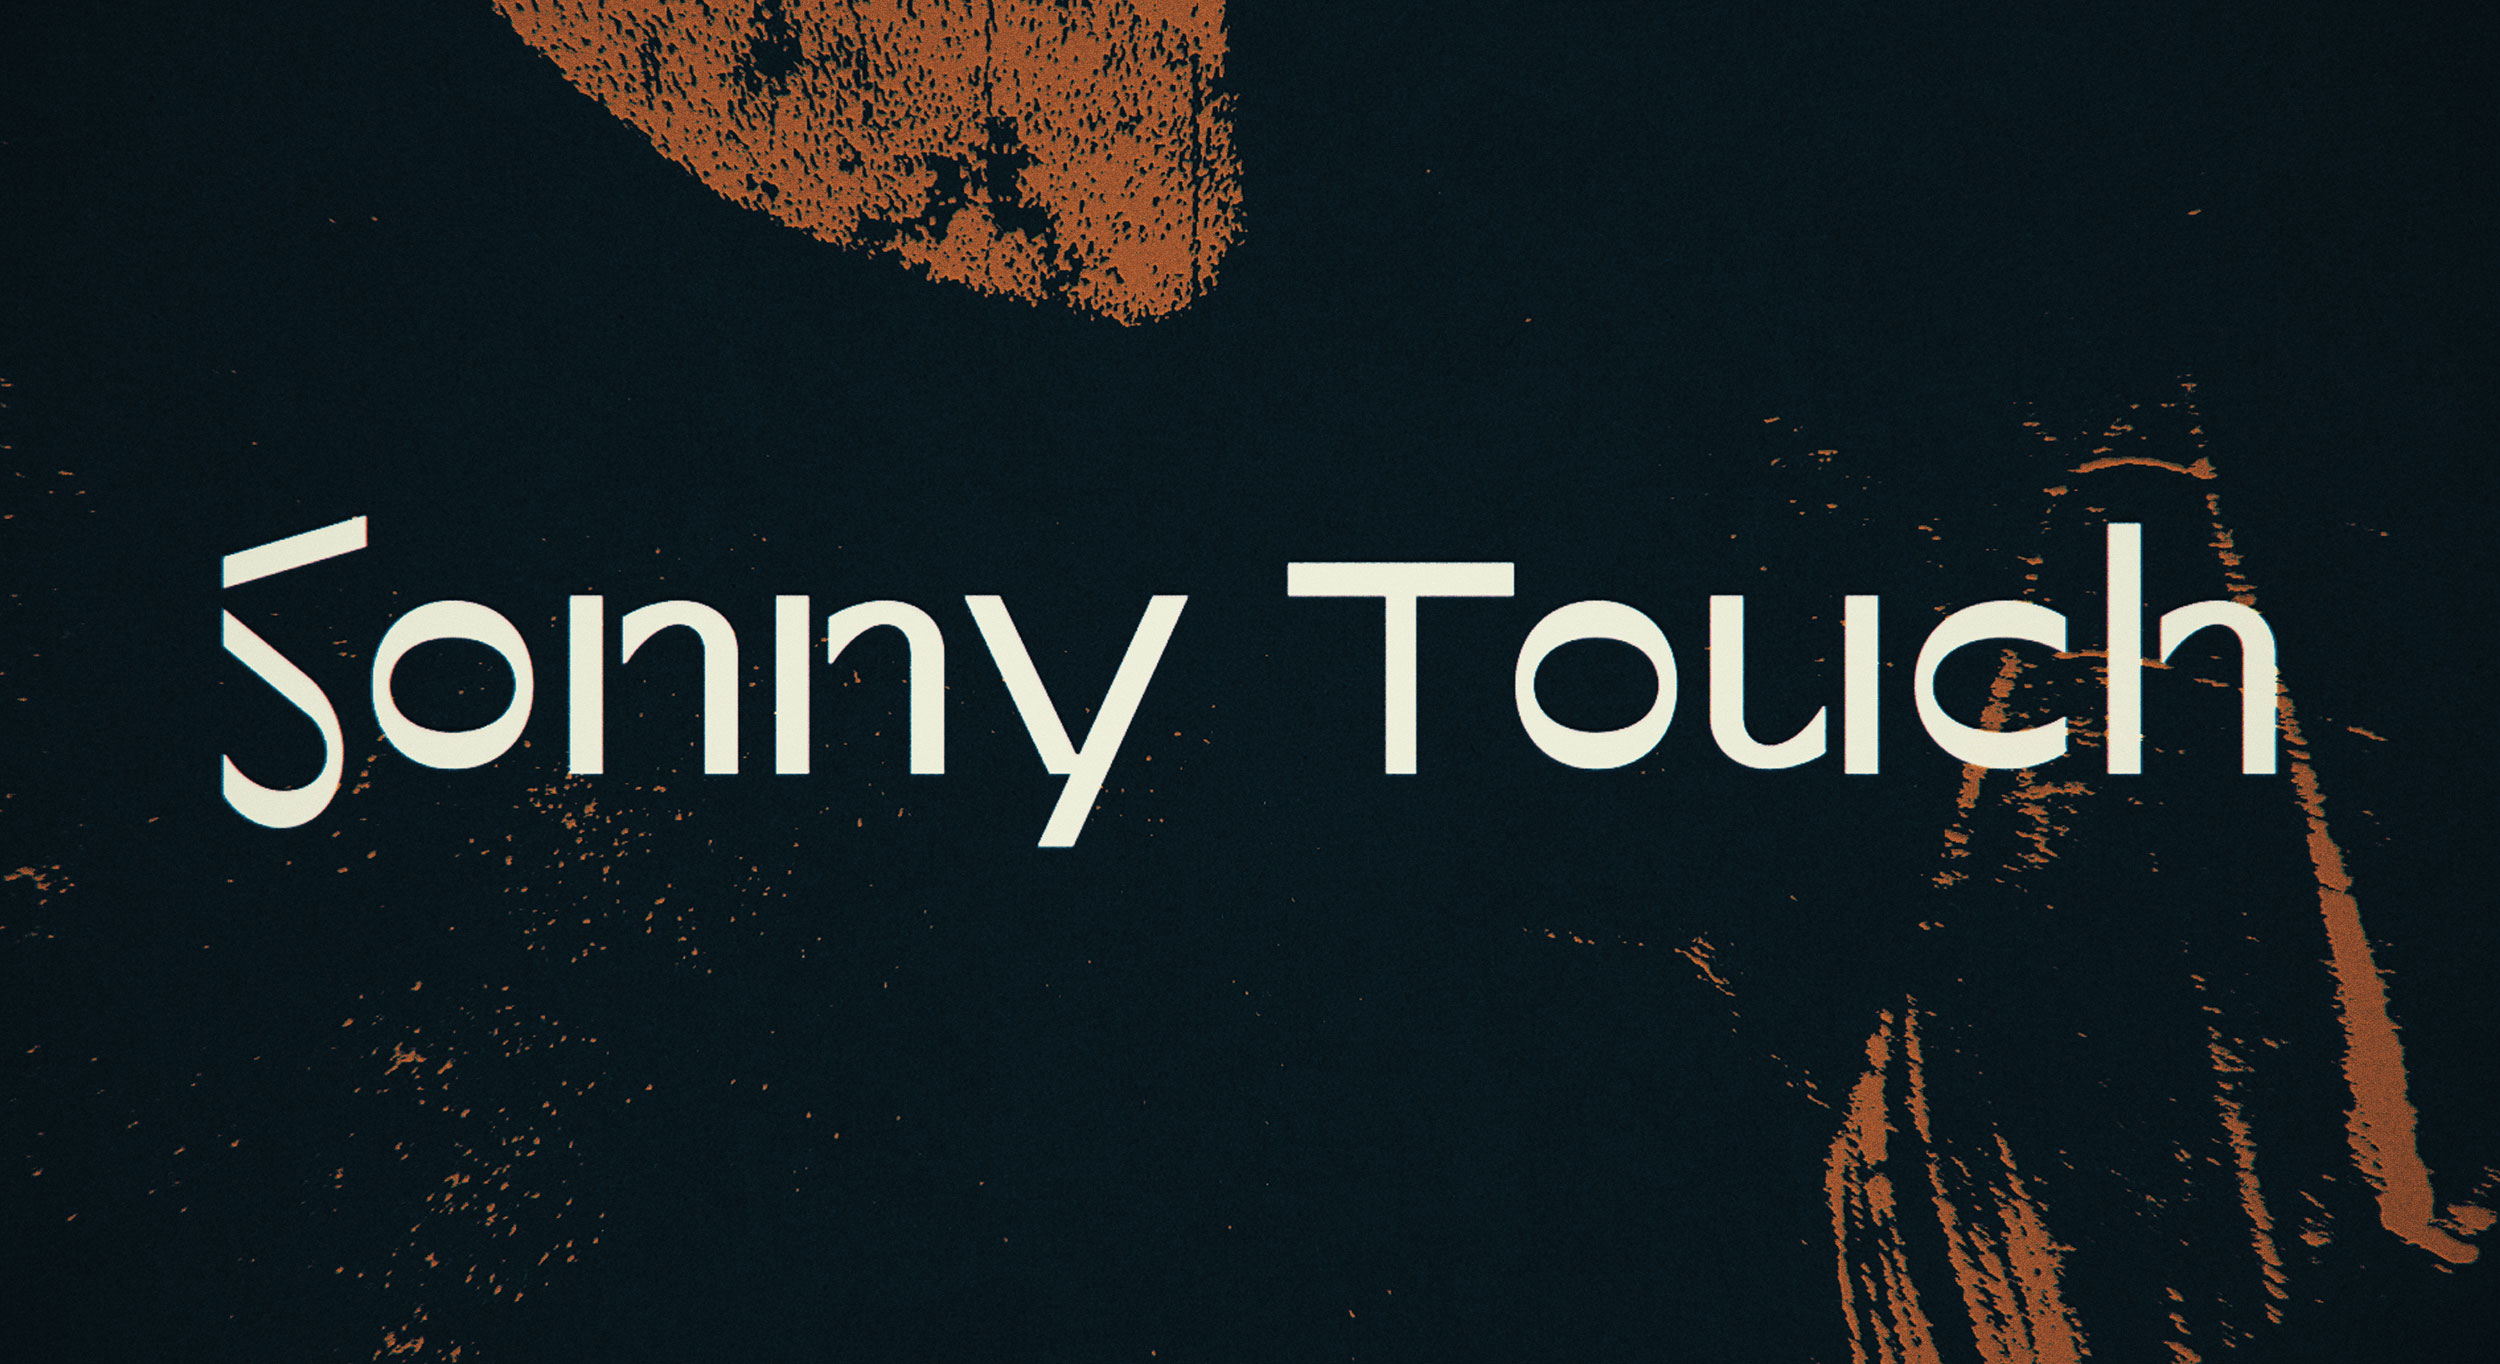 Sonny Touch / Red Socks / Music Video